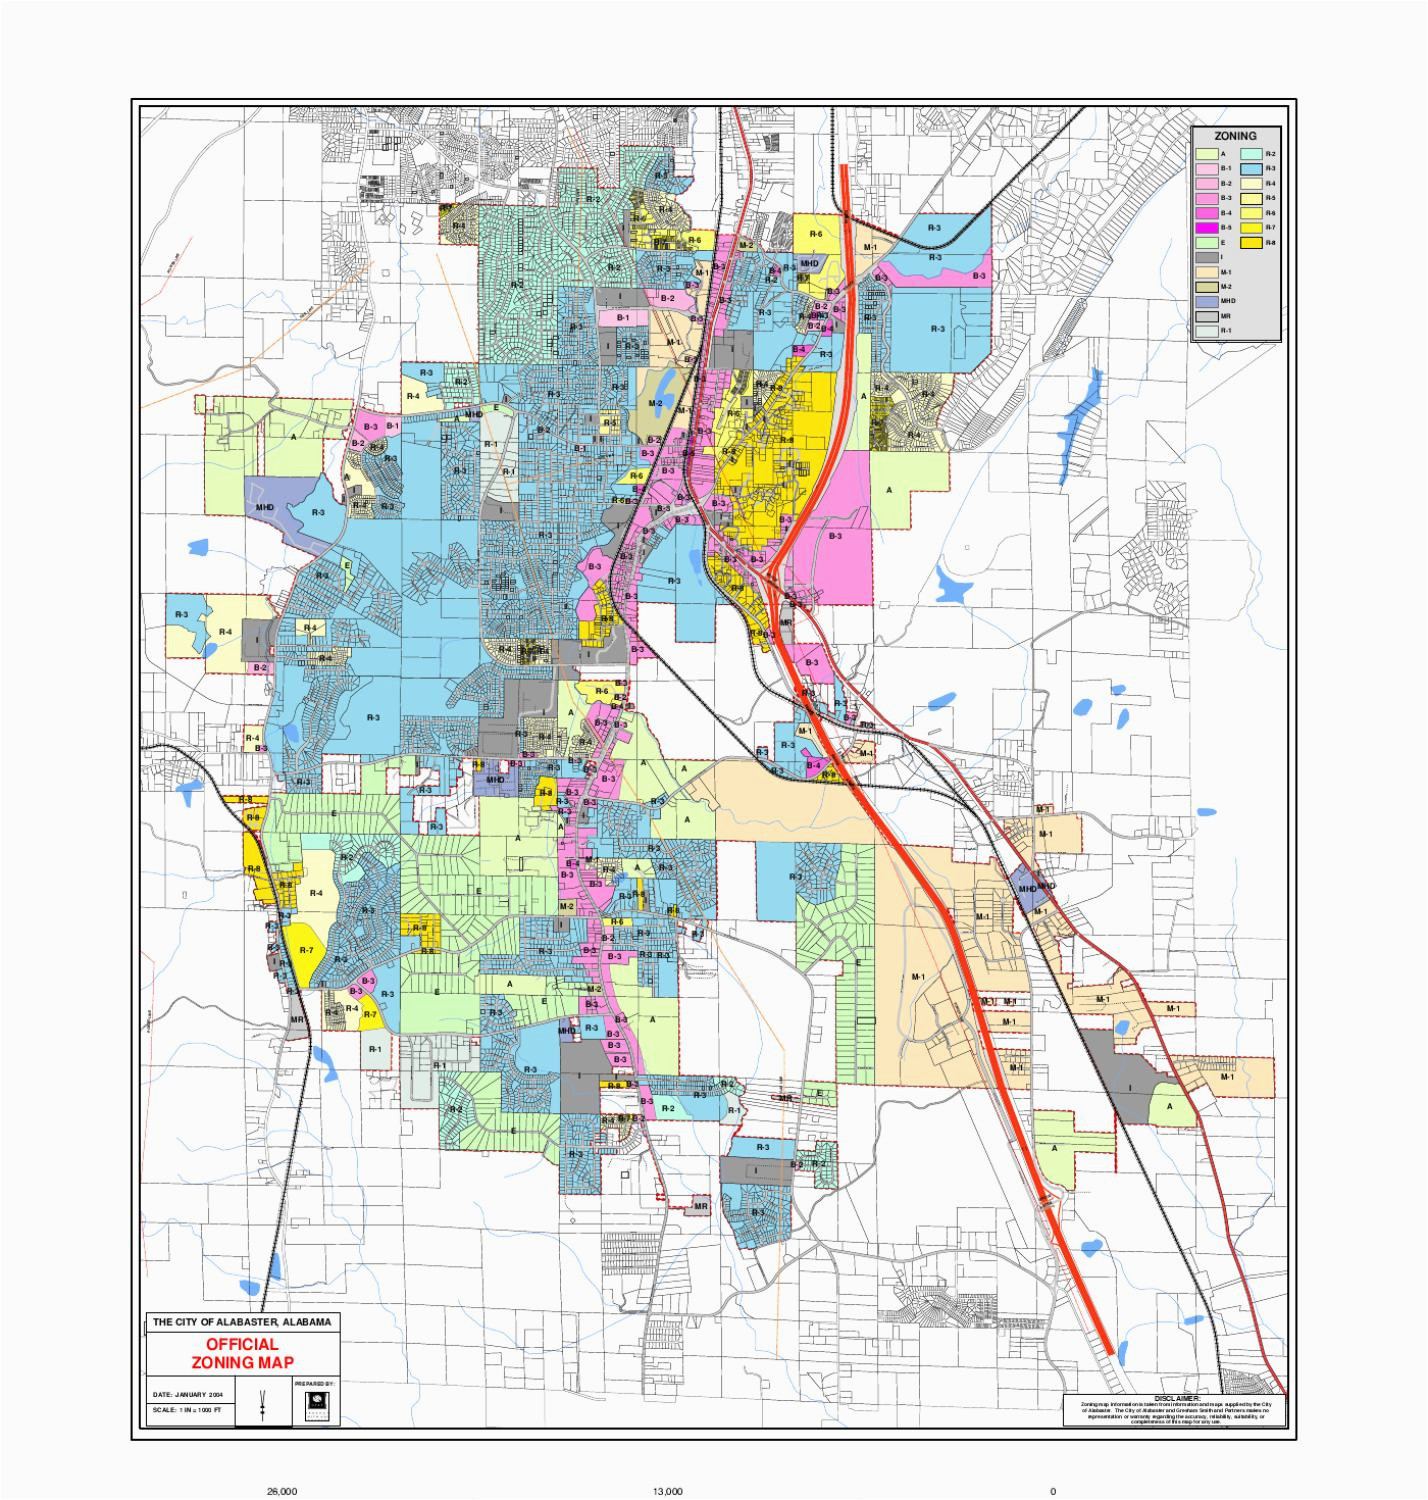 Colorado Springs Zoning Map Colorado Springs Zoning Map | secretmuseum